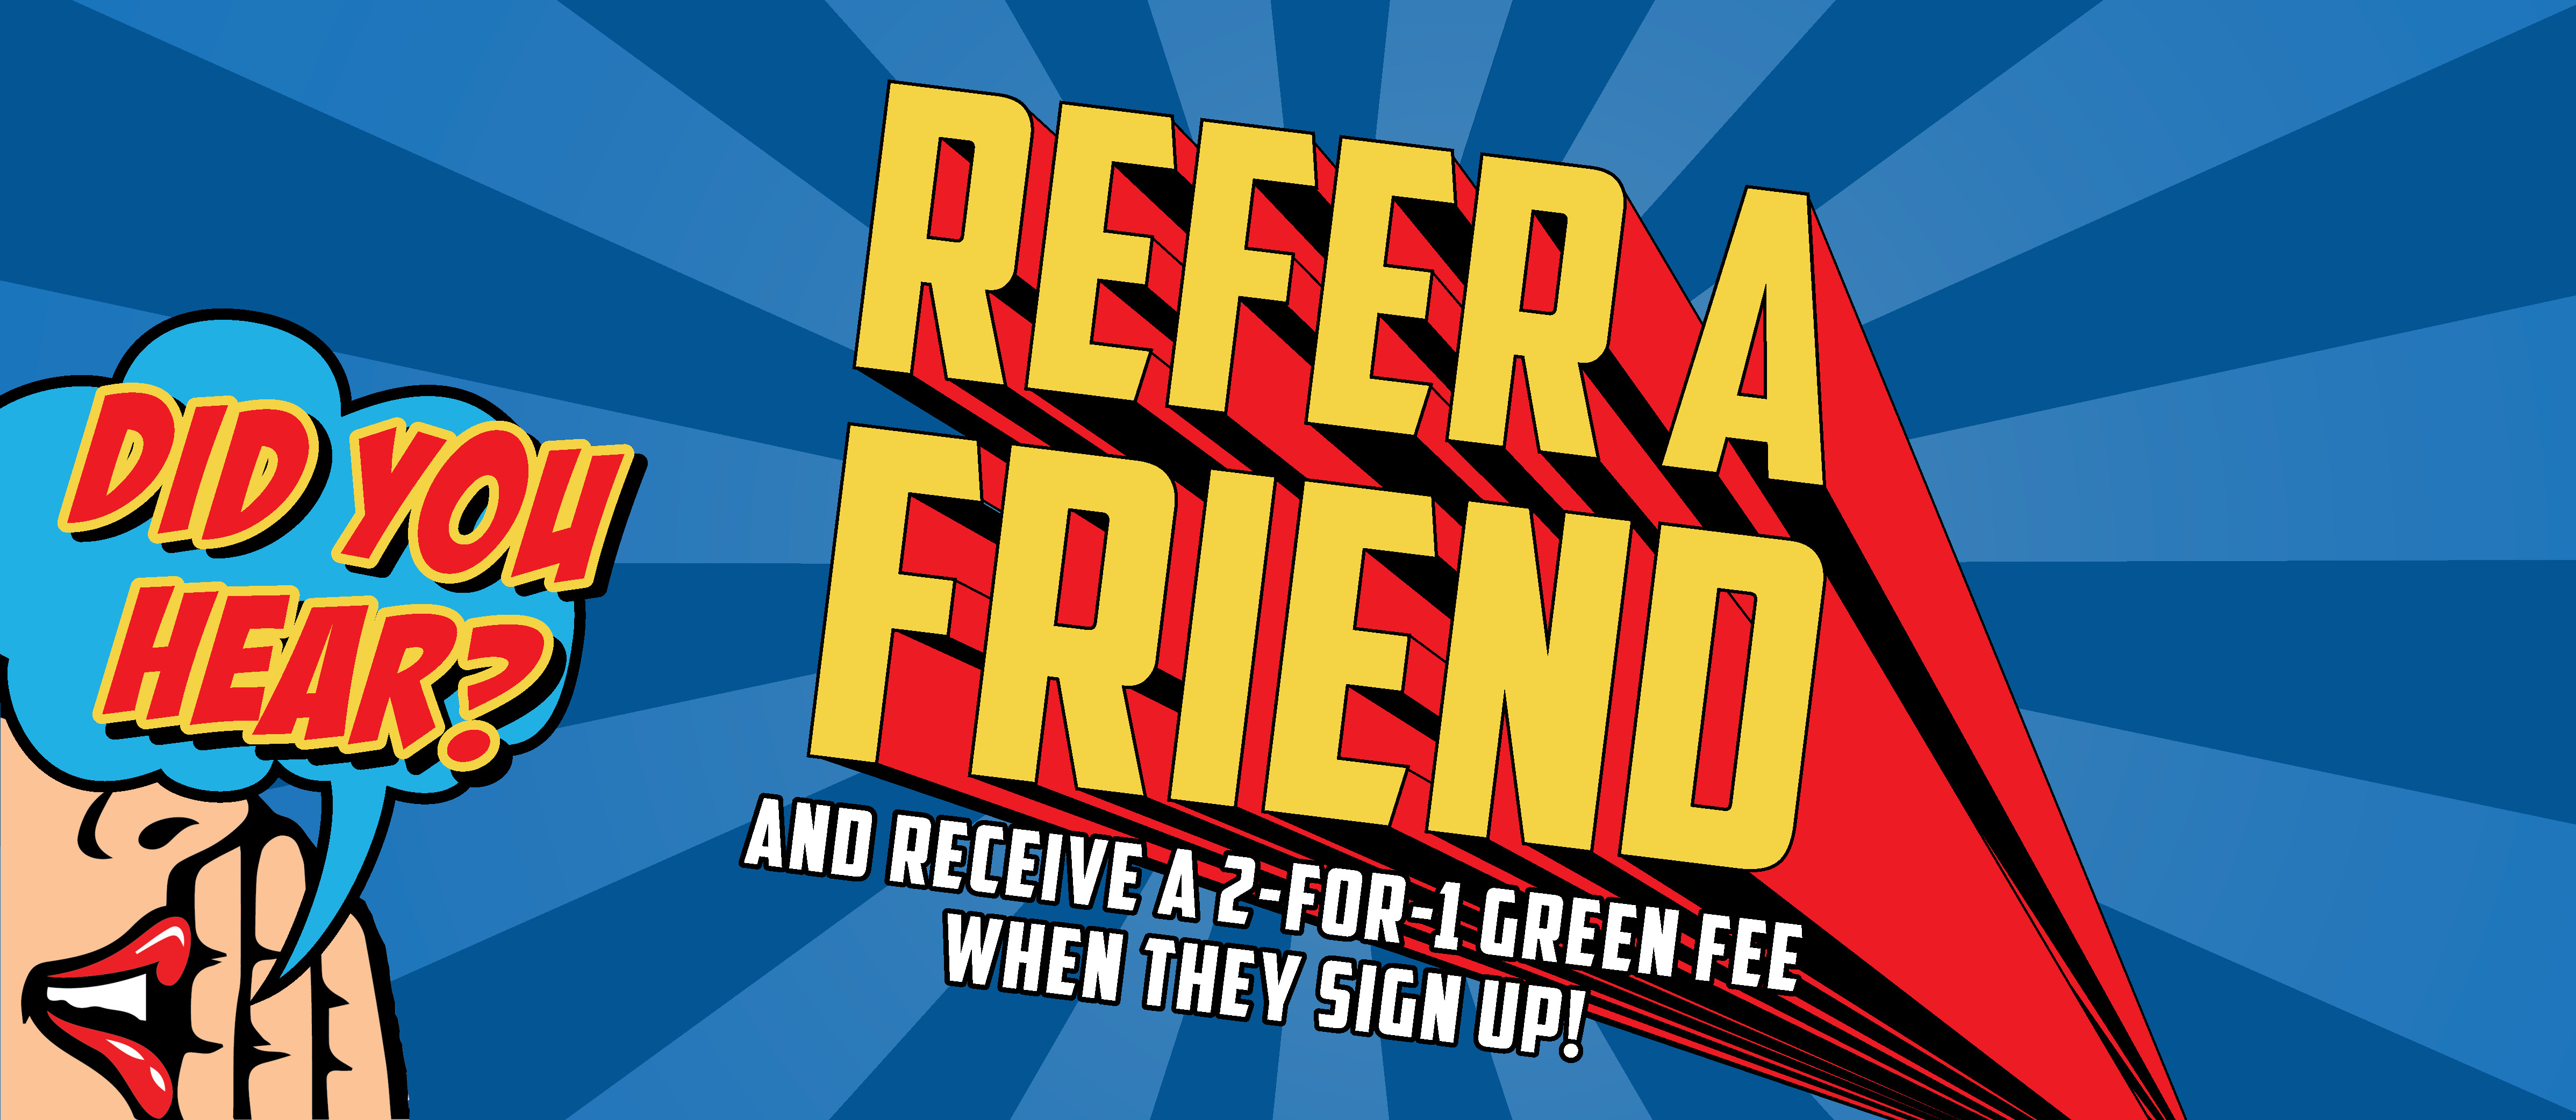 JC-2030-Club-Refer-A-Friend-slider